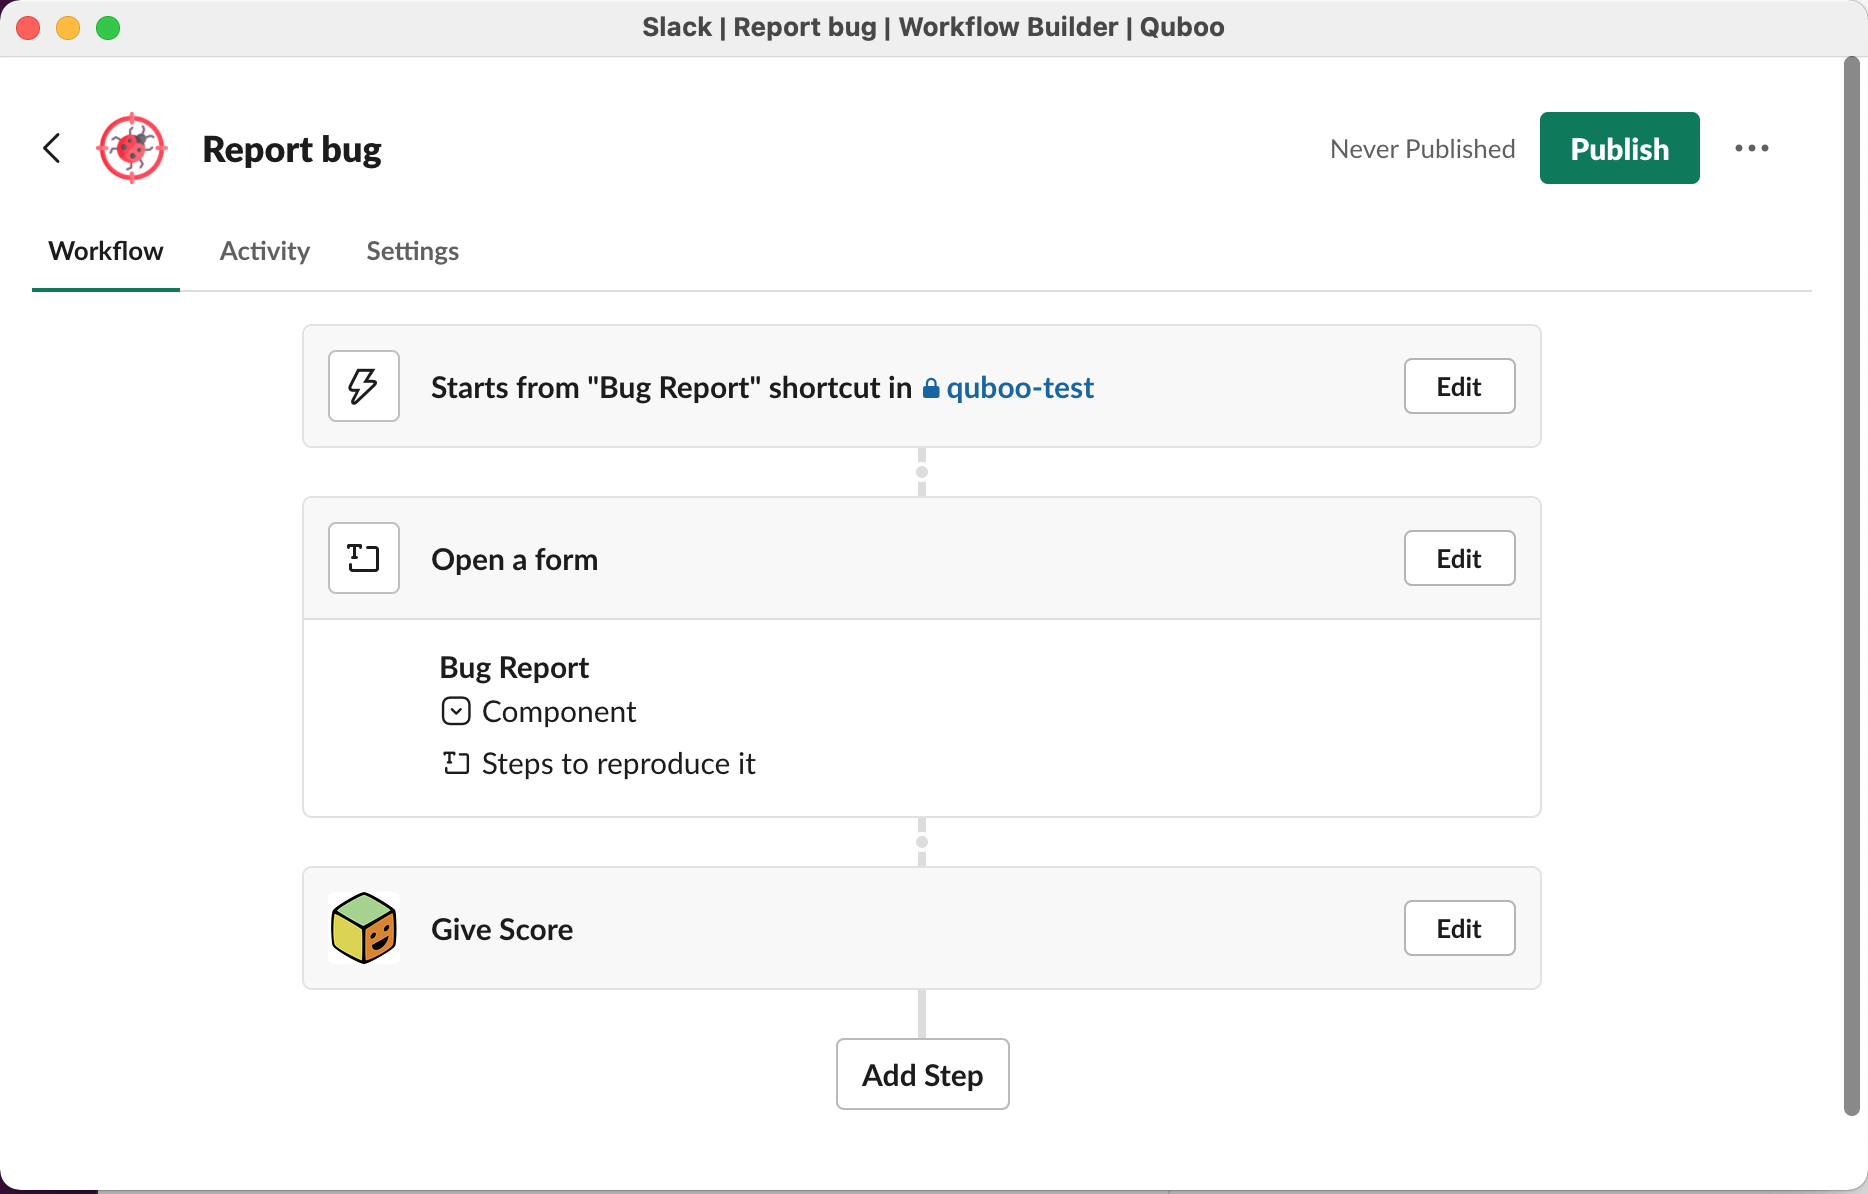 A workflow example - Report Bug